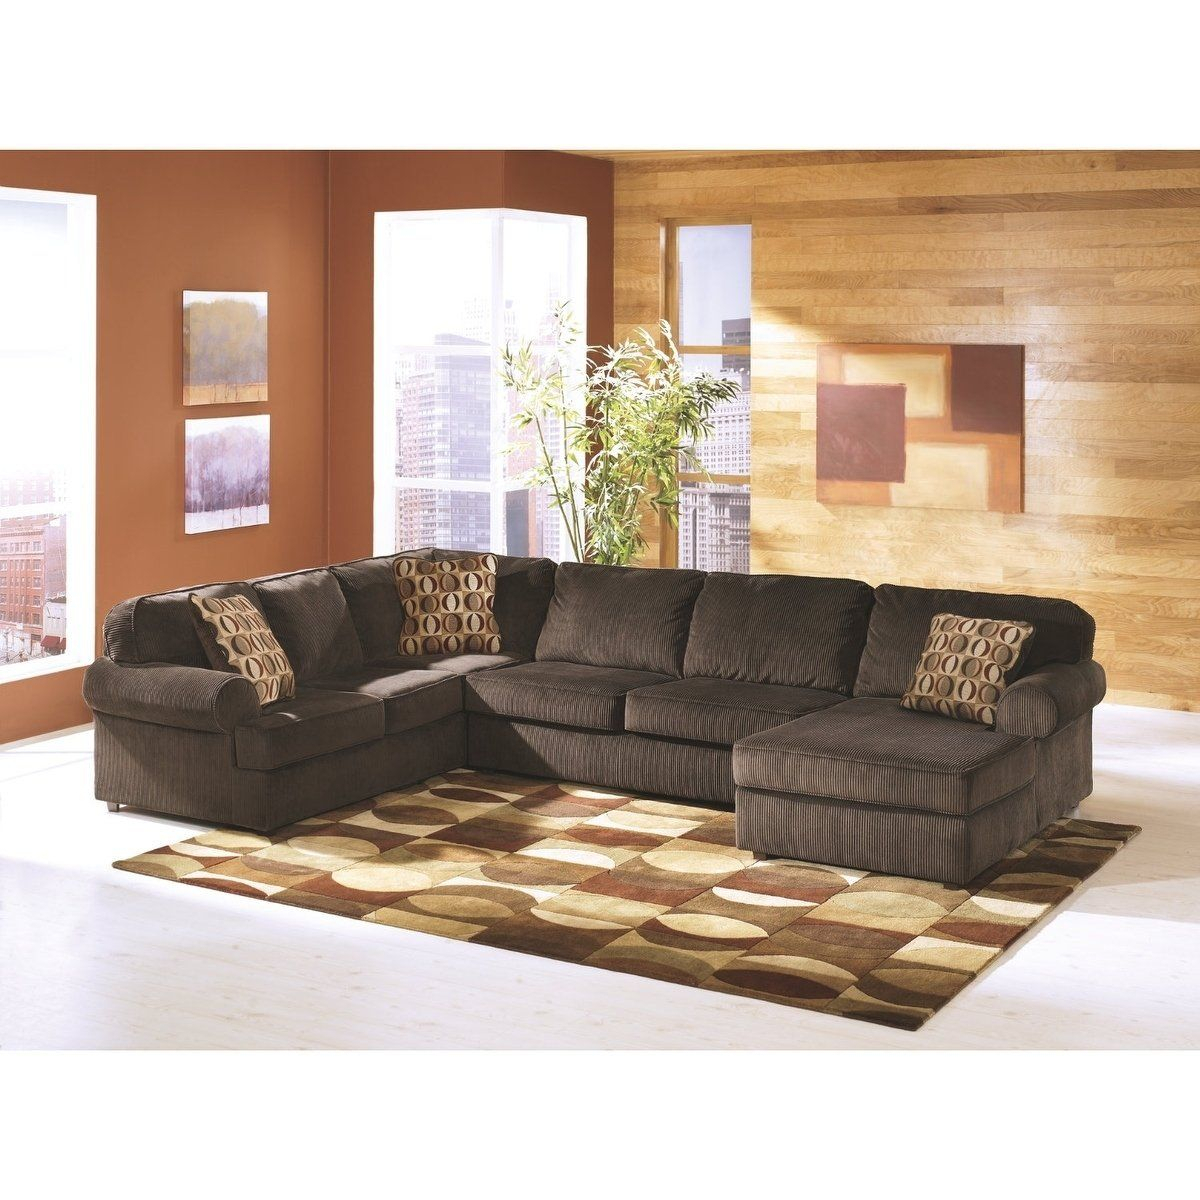 Vista 3 Piece Sectional – Raf Corner Chaise, Armless Pertaining To Norfolk Chocolate 3 Piece Sectionals With Raf Chaise (View 5 of 15)